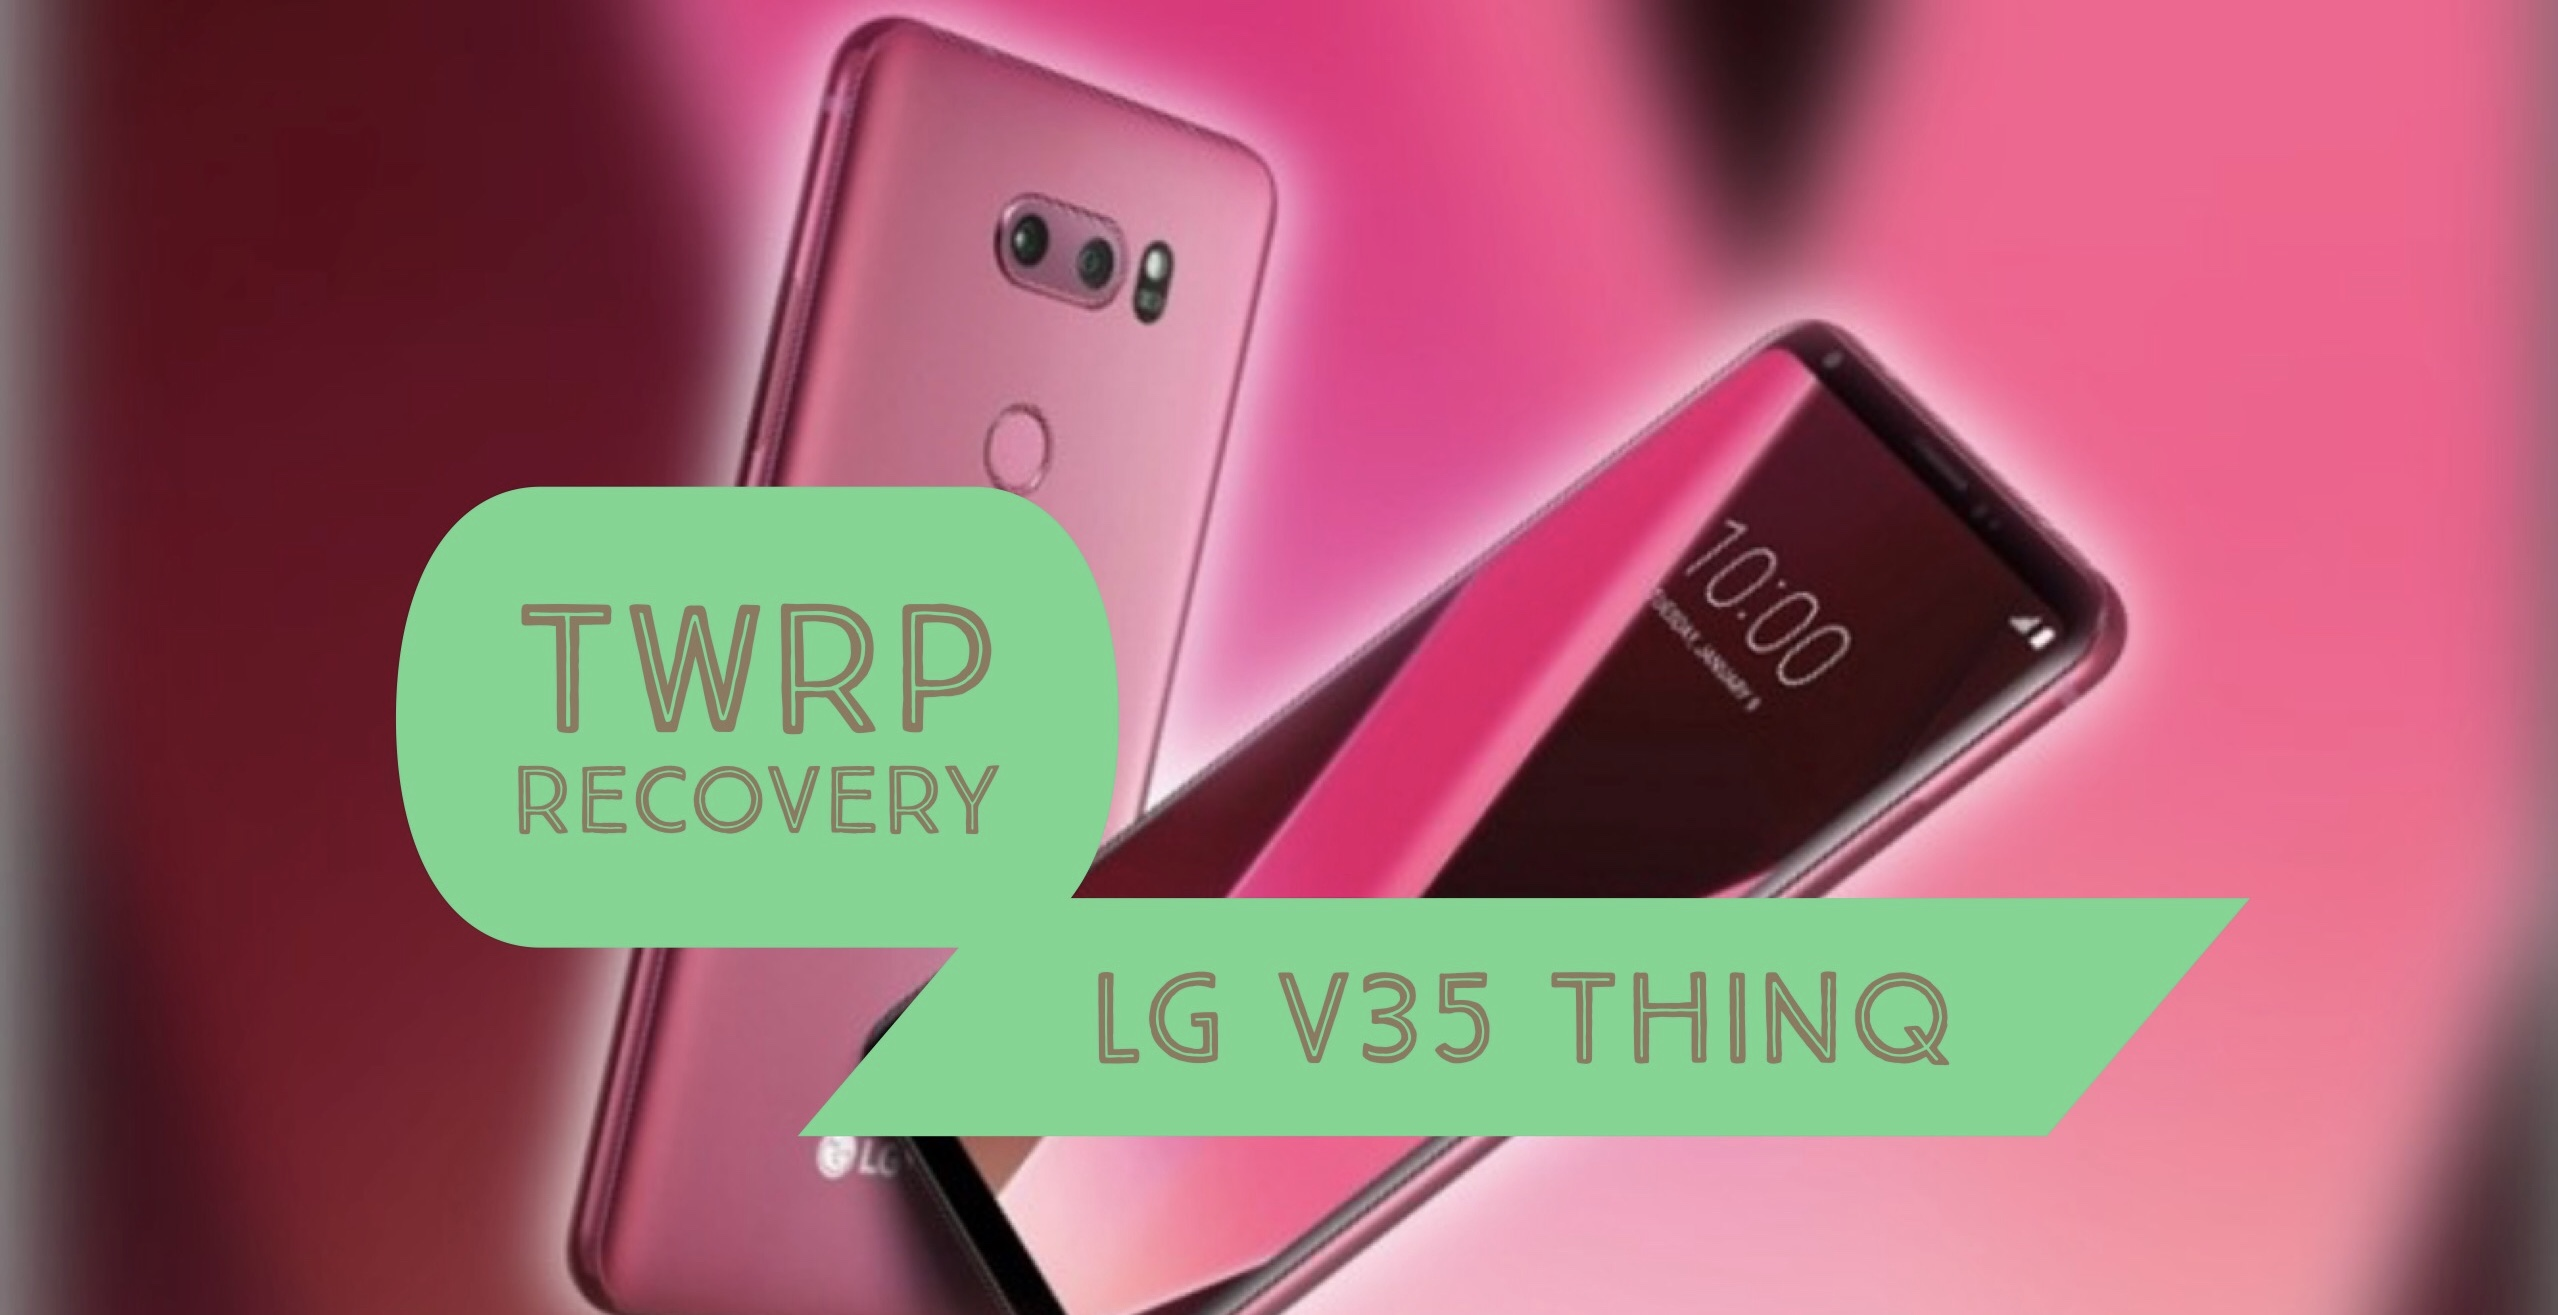 How to Install TWRP Recovery on LG V35 ThinQ: Tutorial GUIDE